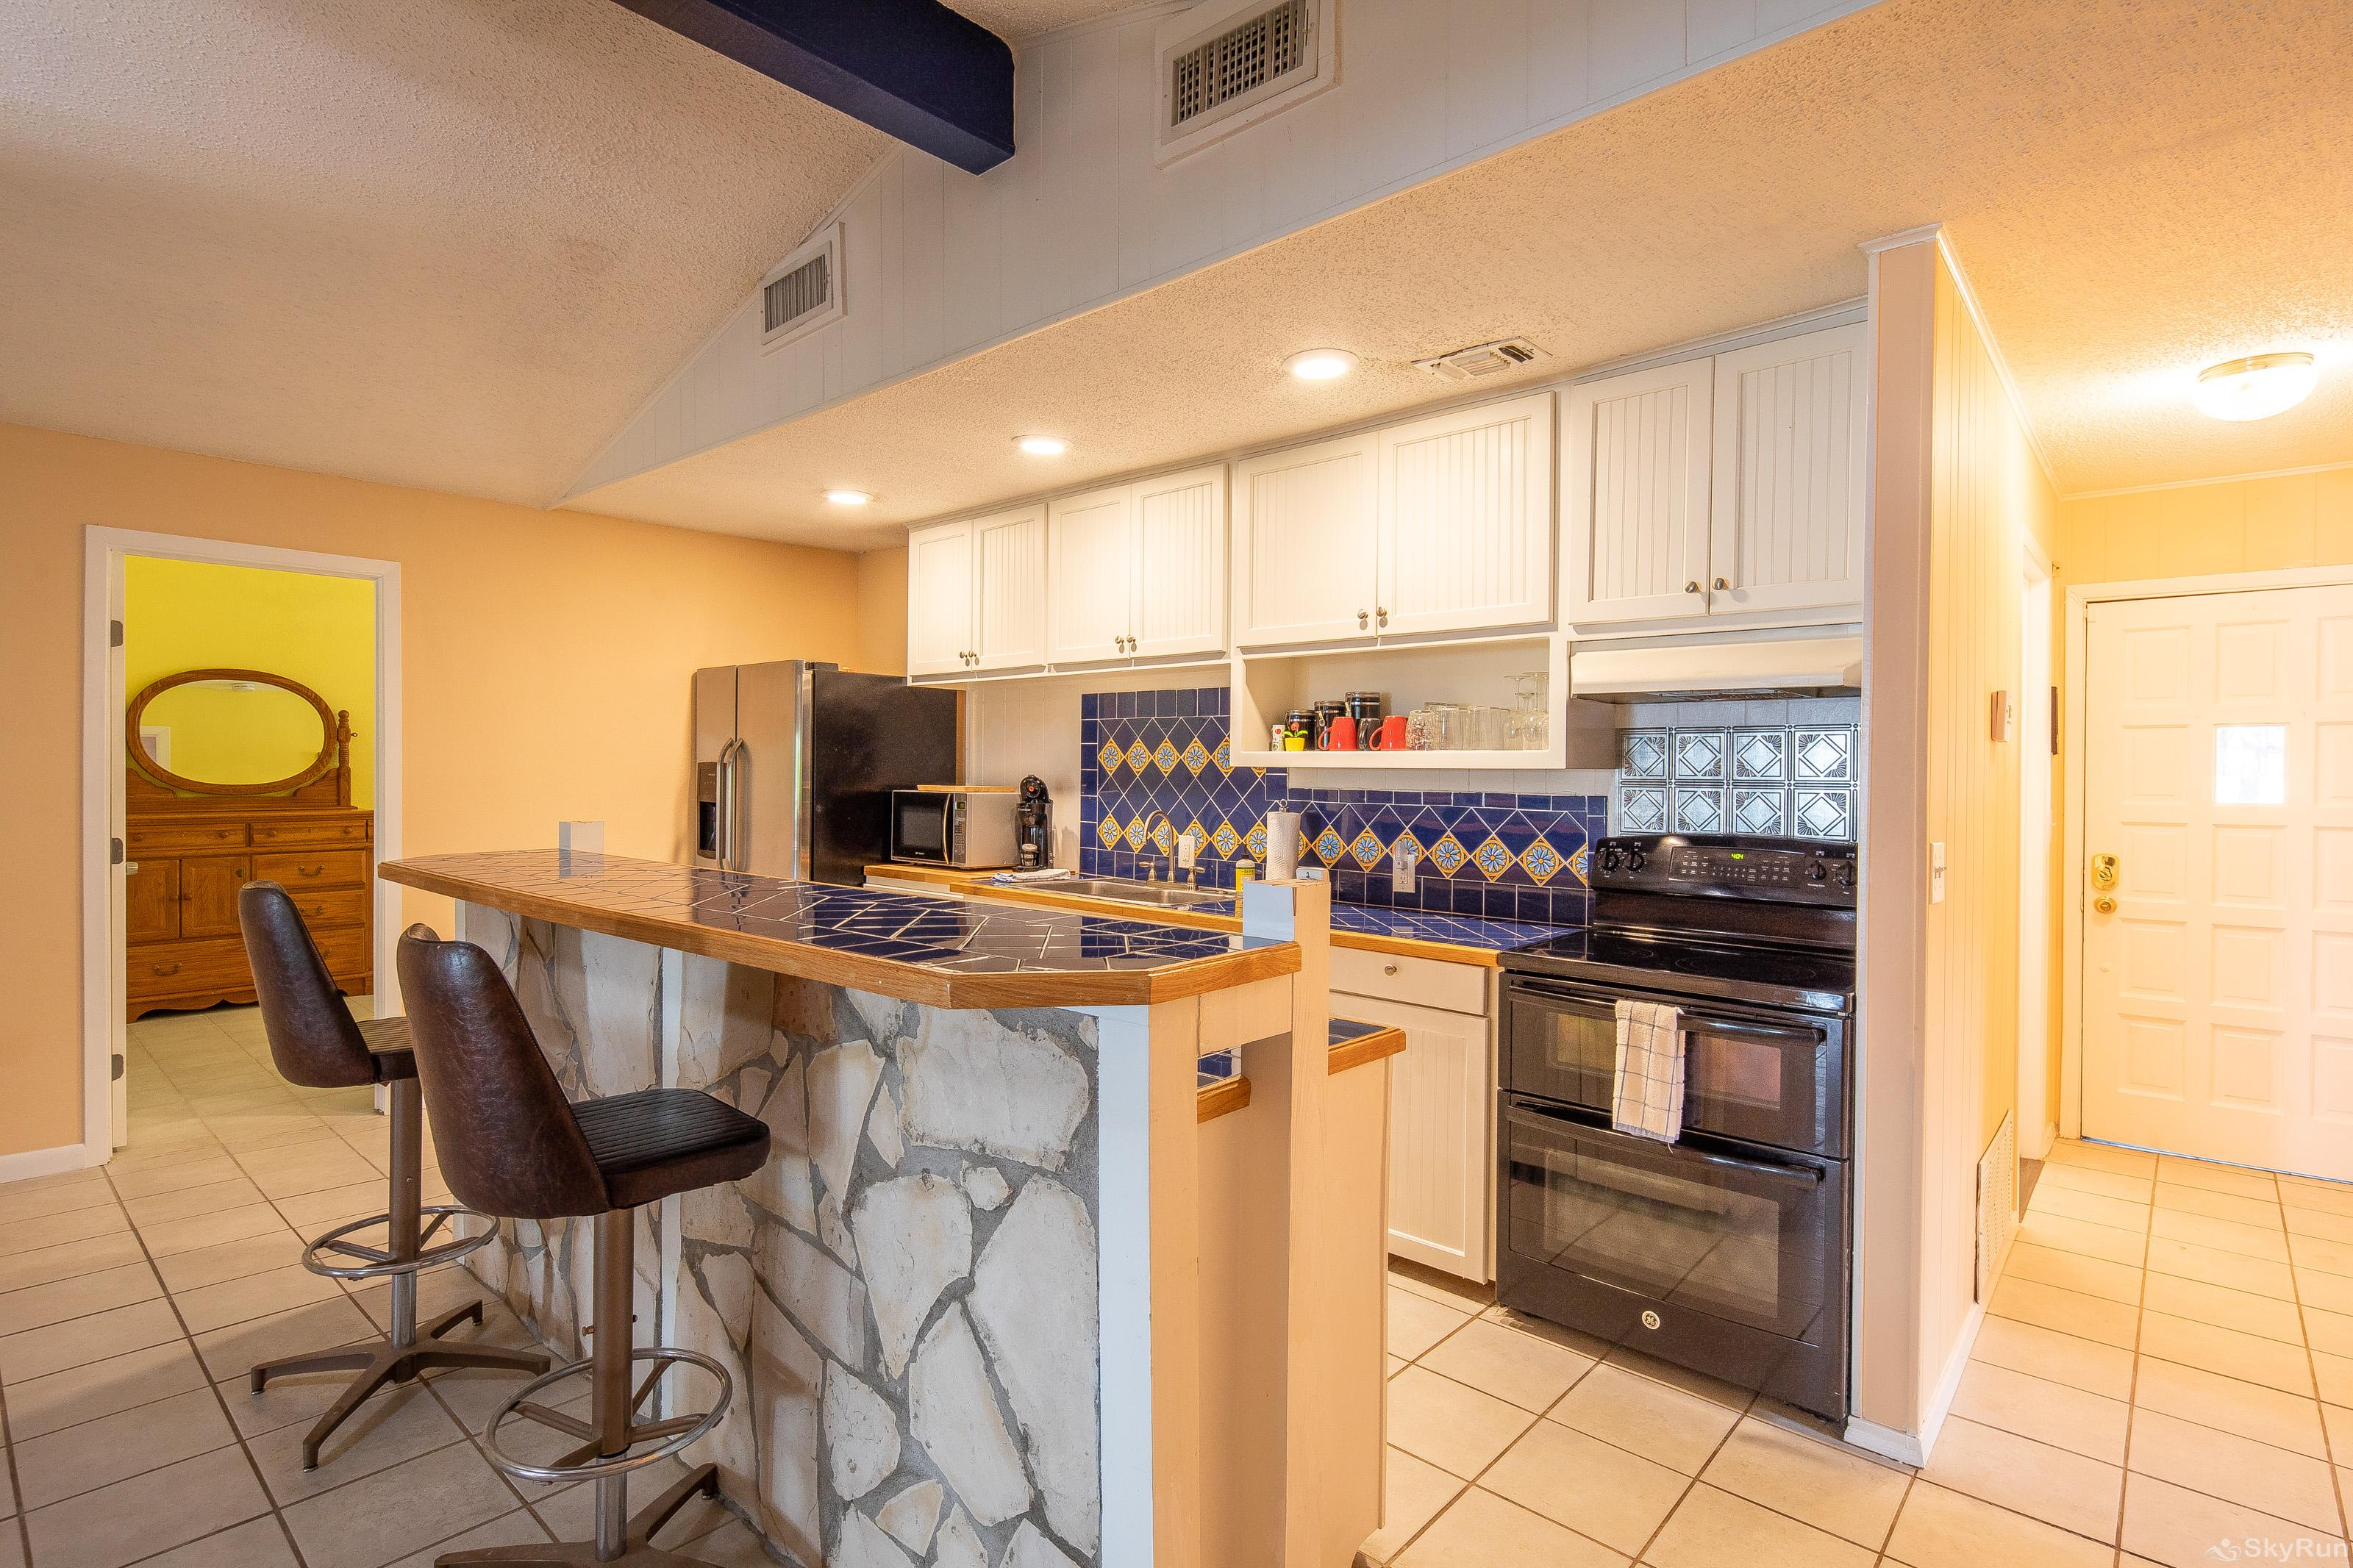 LAKESHORE ESCAPE Kitchen equipped with all cooking and dining essentials